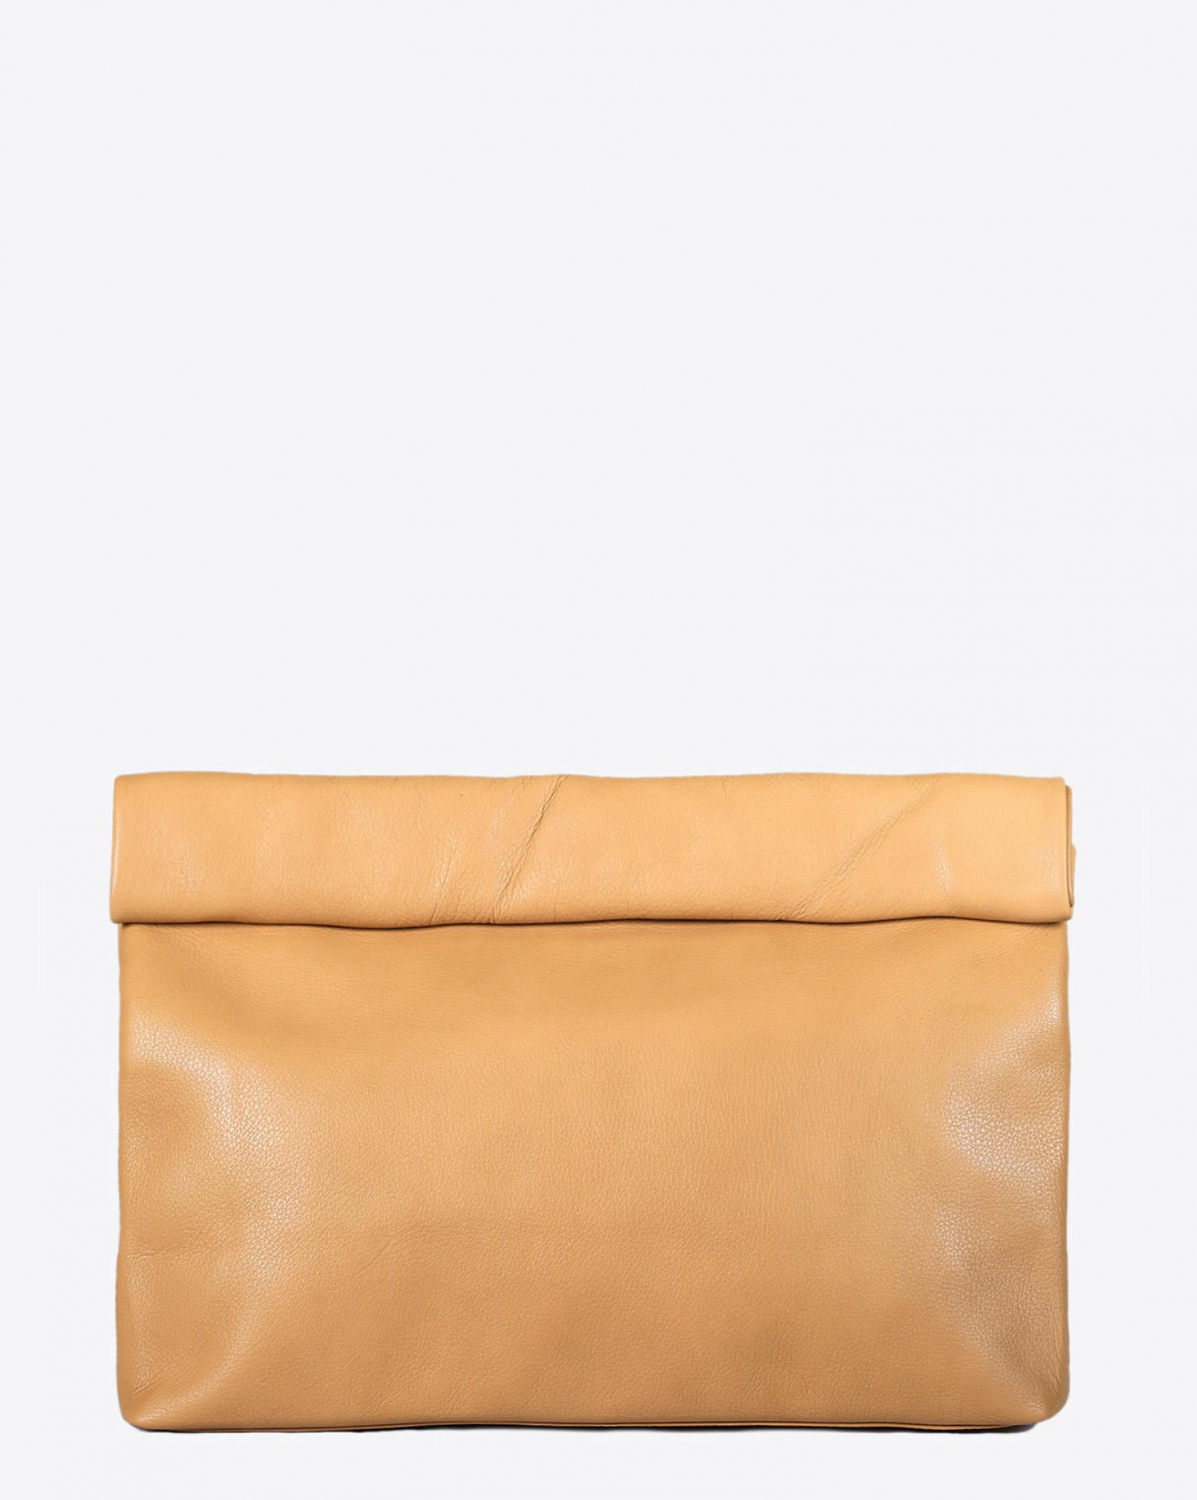 Marie Turnor Lunch Clutch - Camel